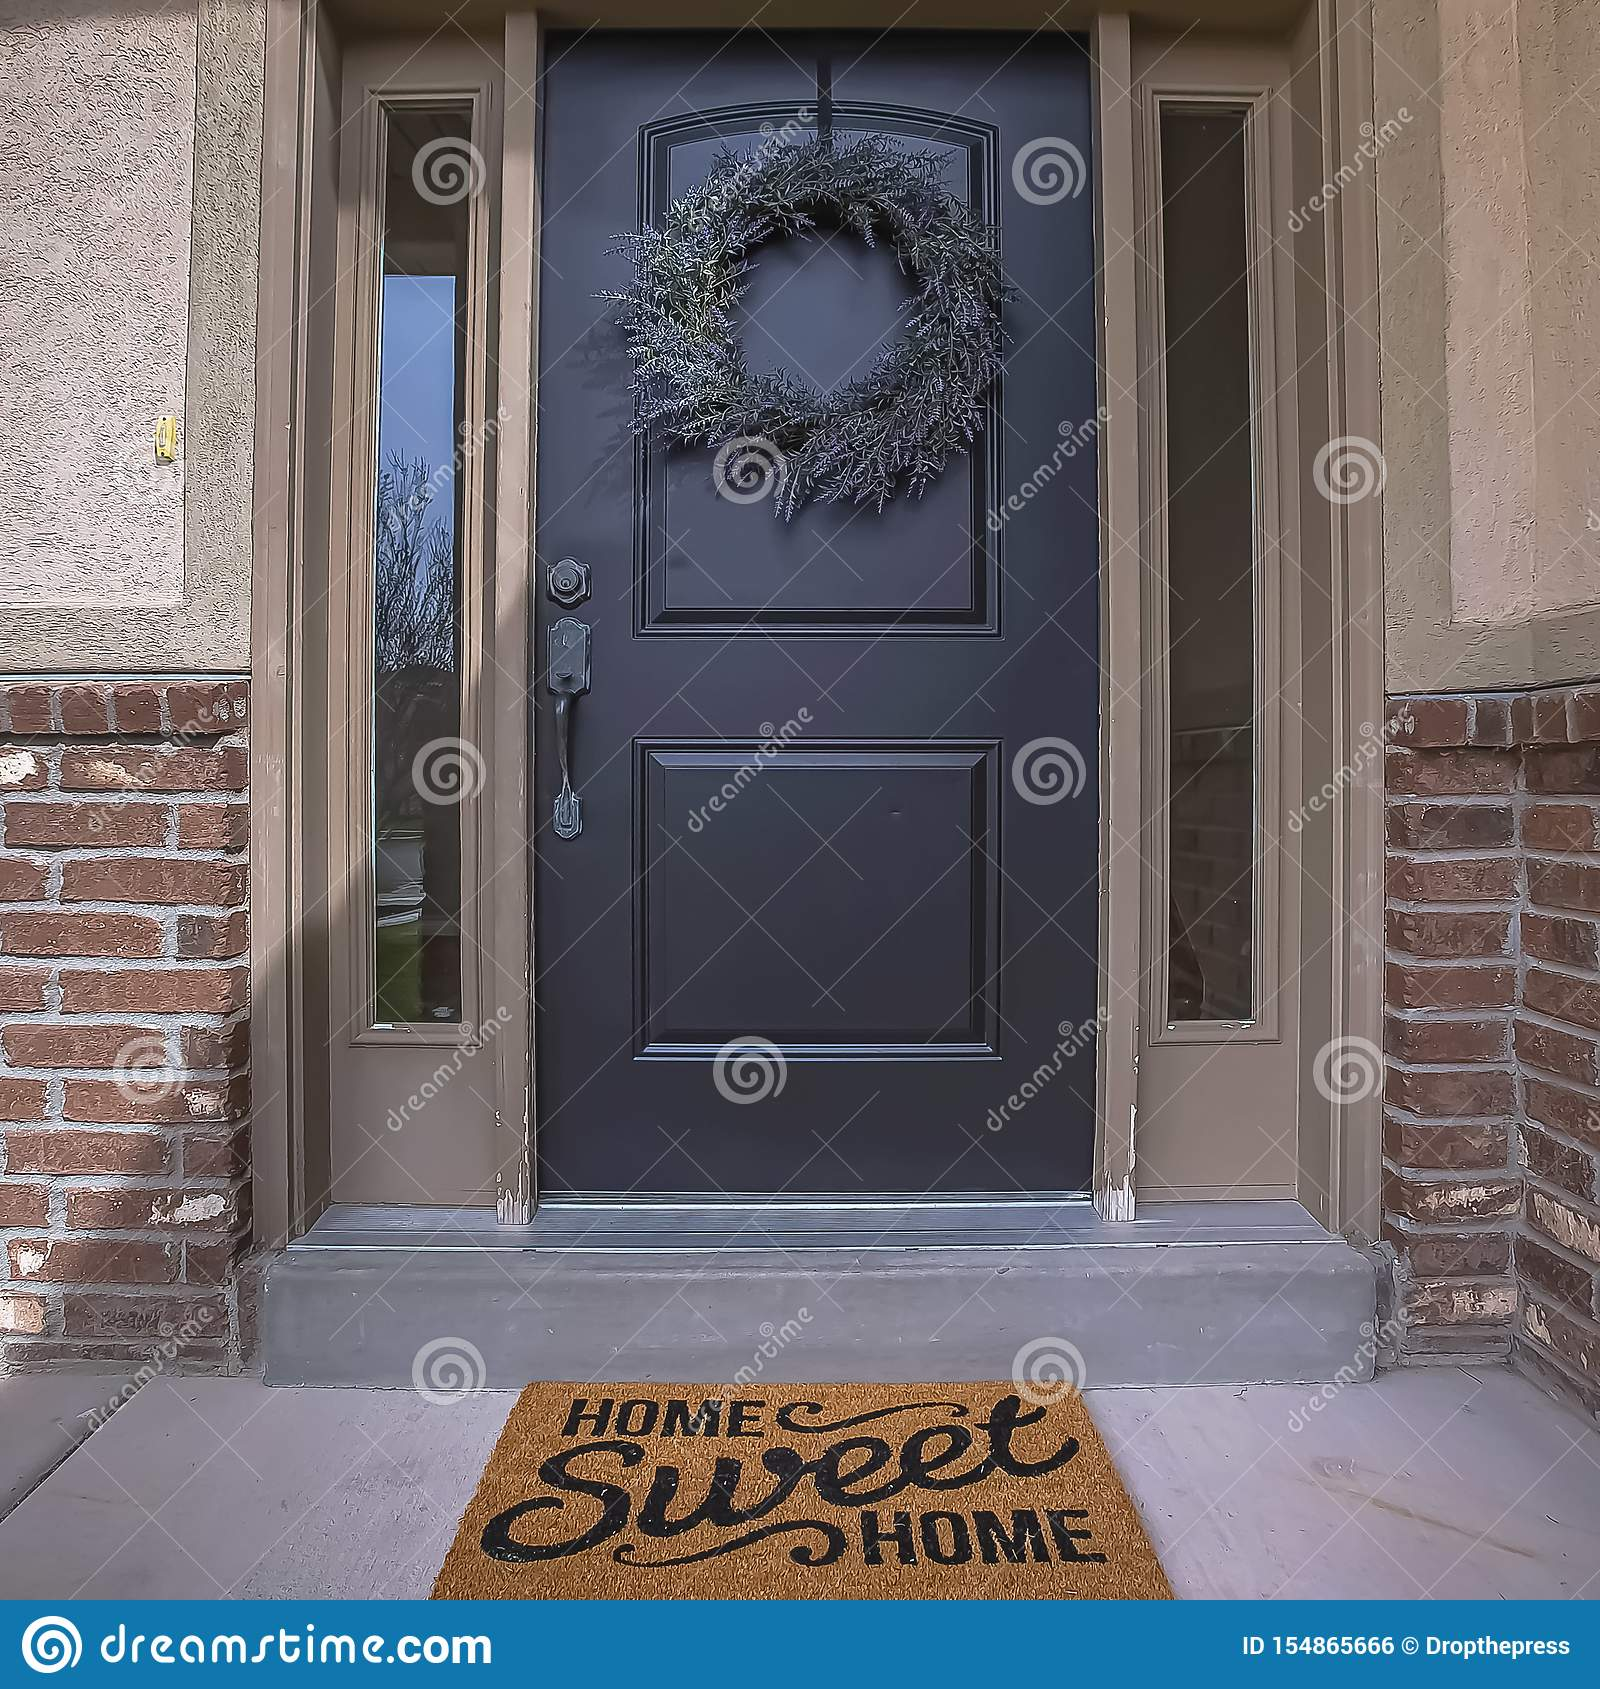 Square Wreath And Doormat On The Front Door With Sidelights